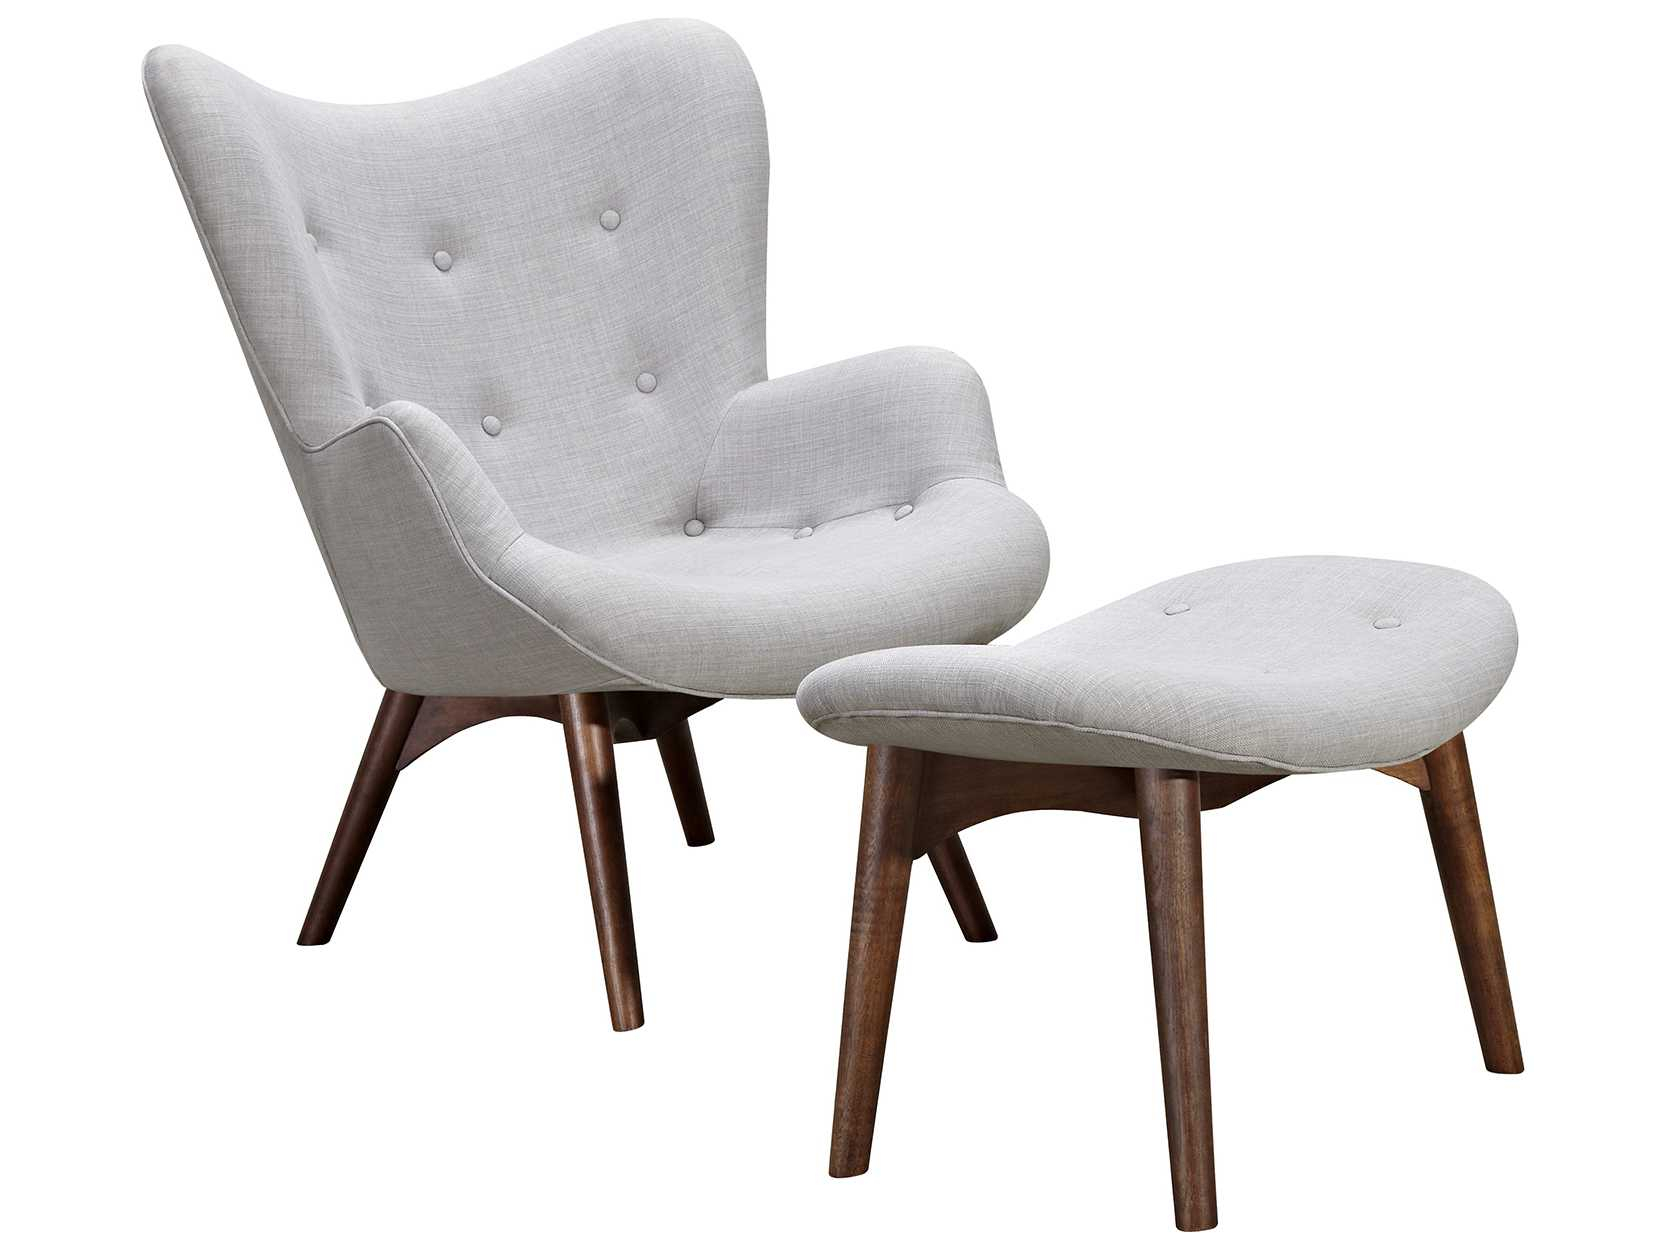 Nyekoncept Aiden Glacier White Accent Chair & Ottoman With Walnut Throughout Aidan Ii Swivel Accent Chairs (Photo 12 of 25)